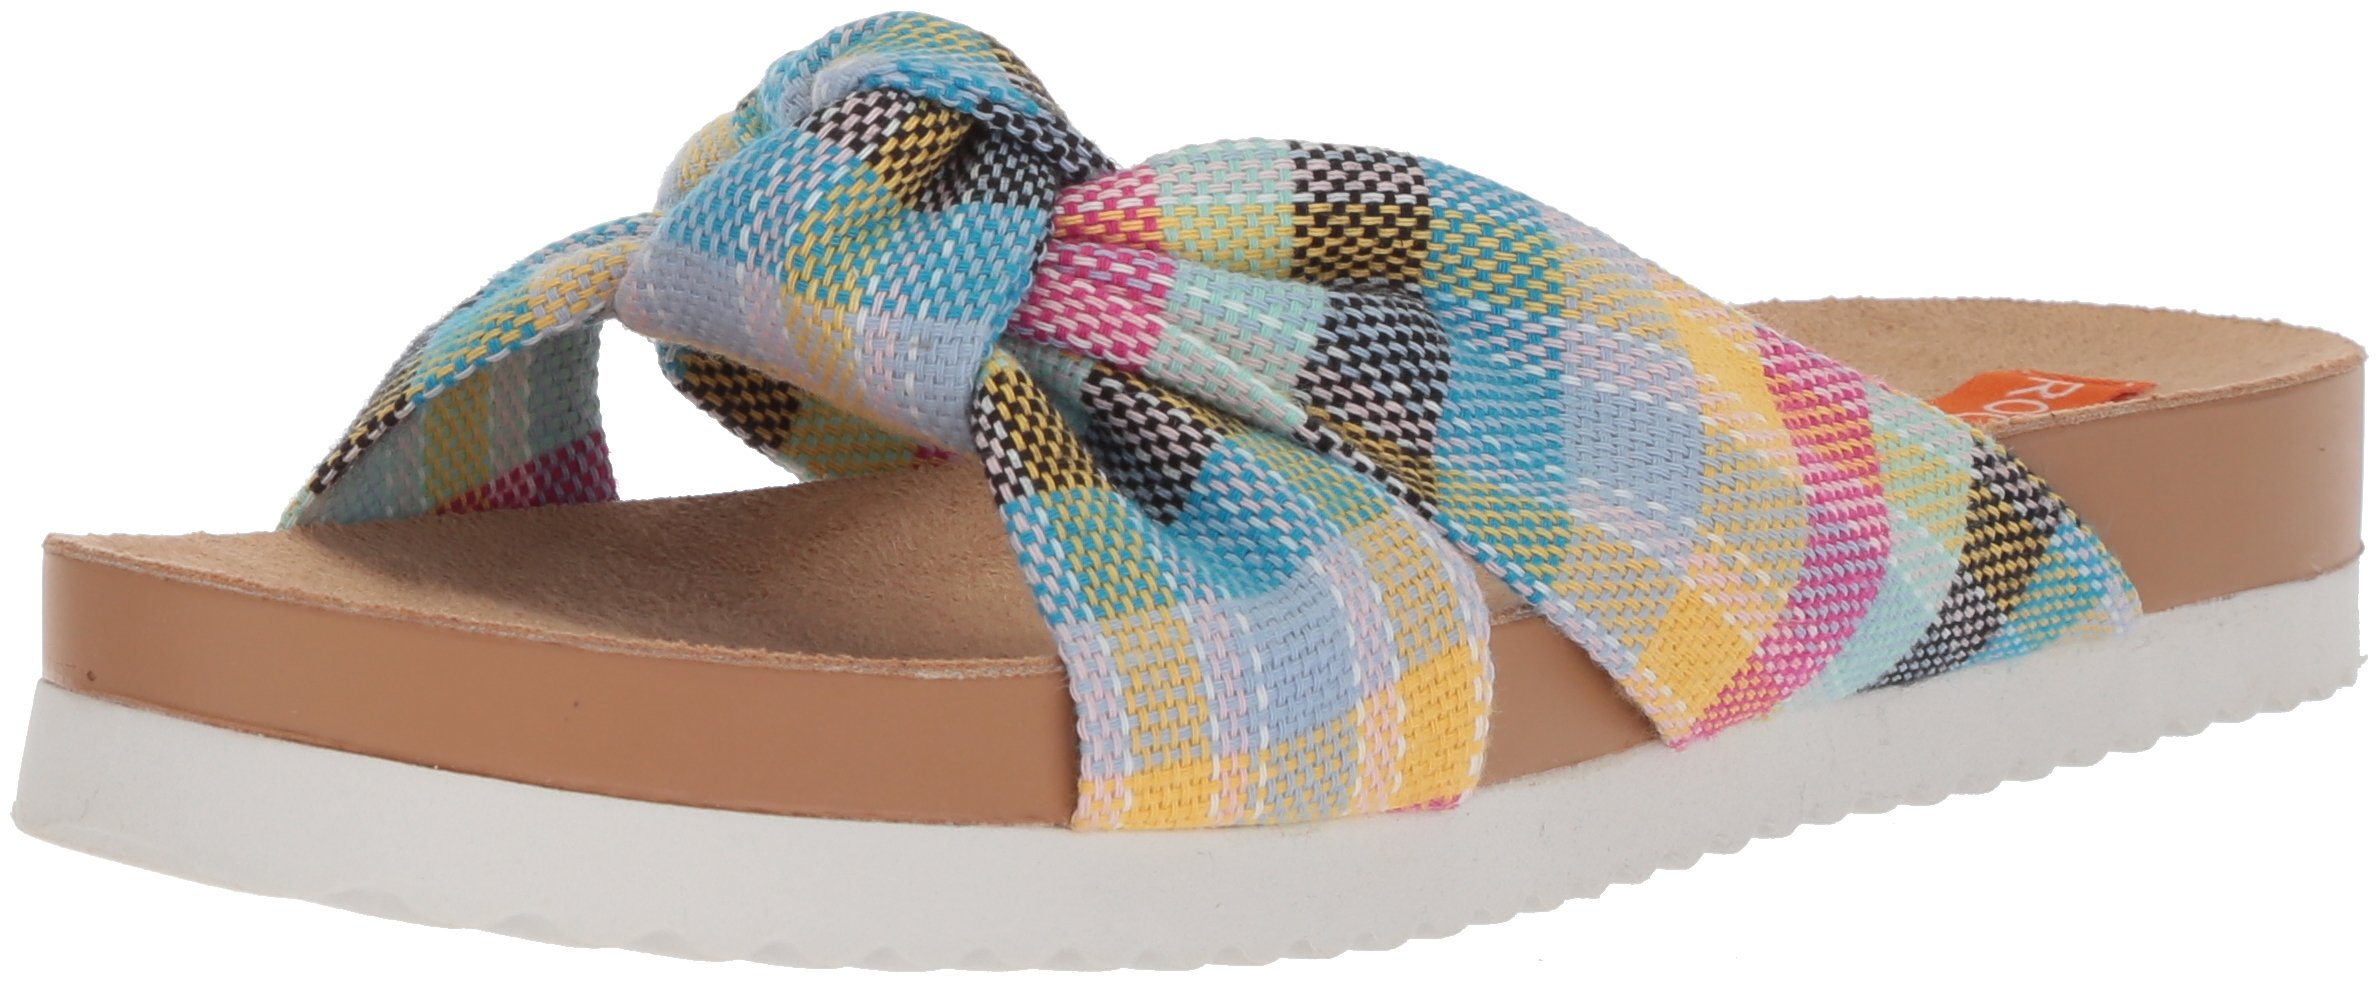 Rocket Dog Women's Loving Market Cotton Slide Sandal, Pink/Multi, 6.5 Medium US